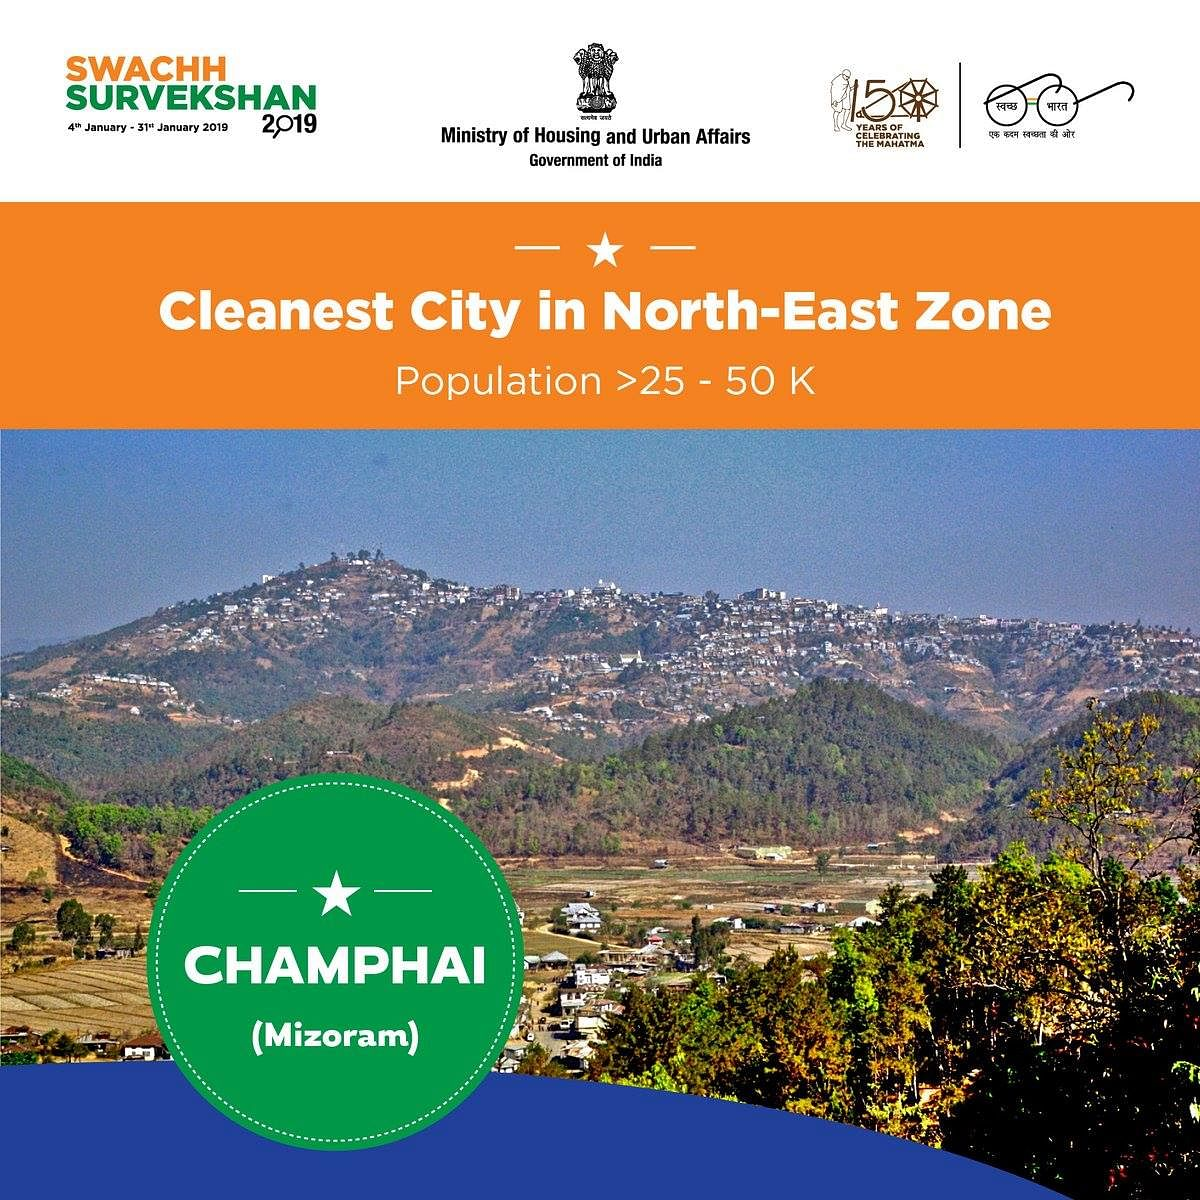 In January this year, Champhai was chosen as the 'cleanest city in the Northeast Zone'